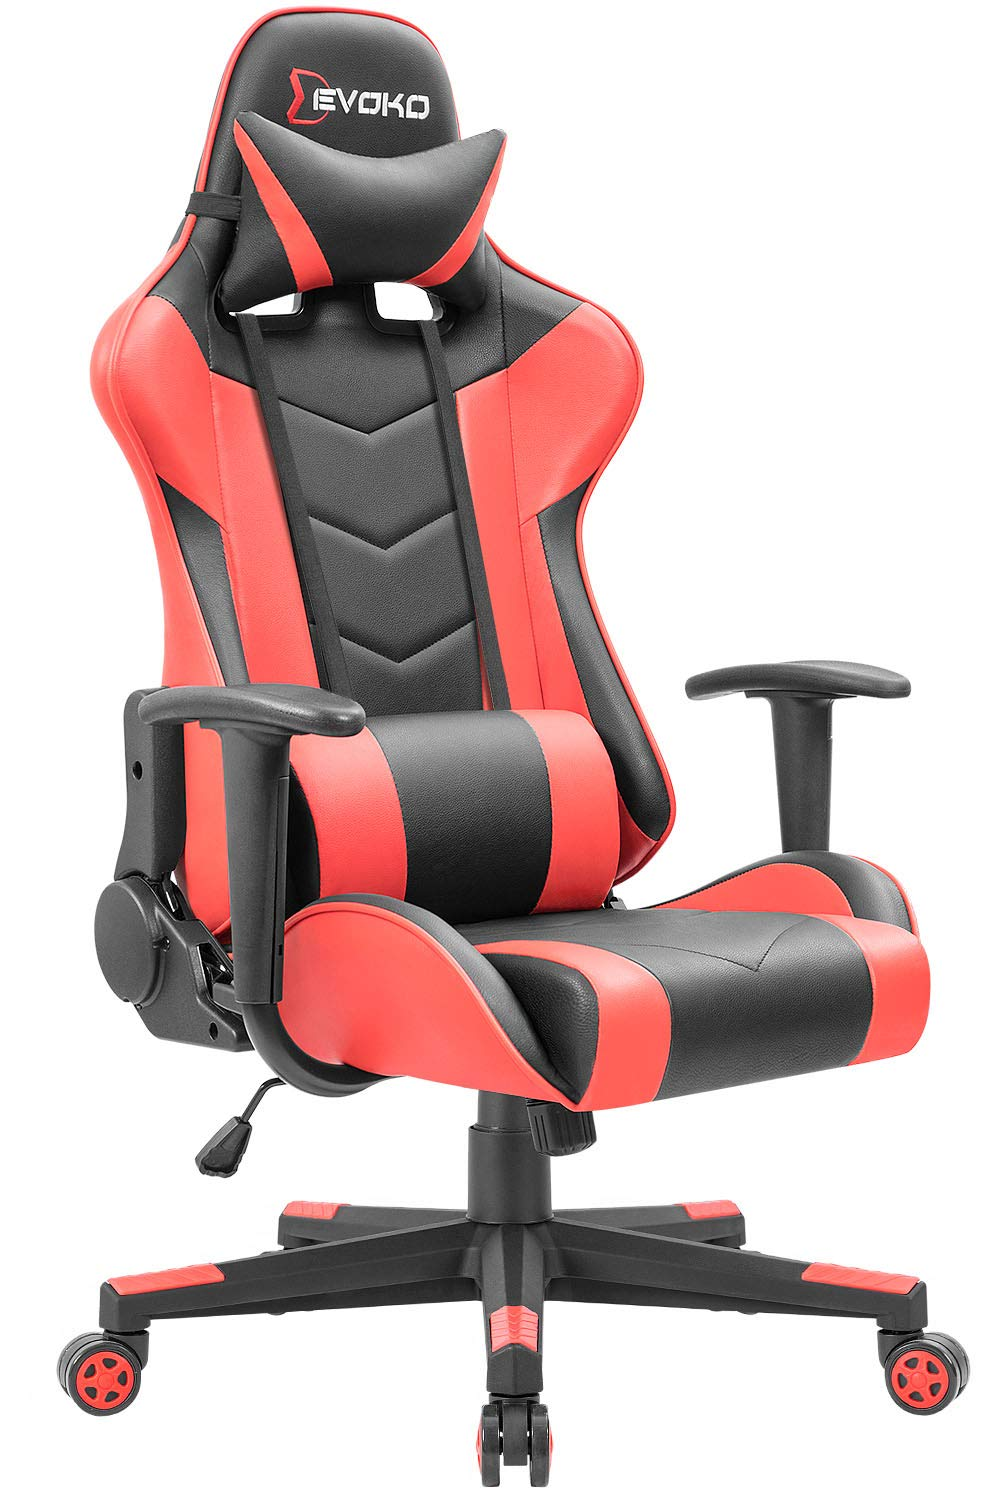 Devoko Ergonomic Gaming Chair Racing Style Adjustable Height High-Back PC Computer Chair with Headrest and Lumbar Support Executive Office Chair (Red) by Devoko